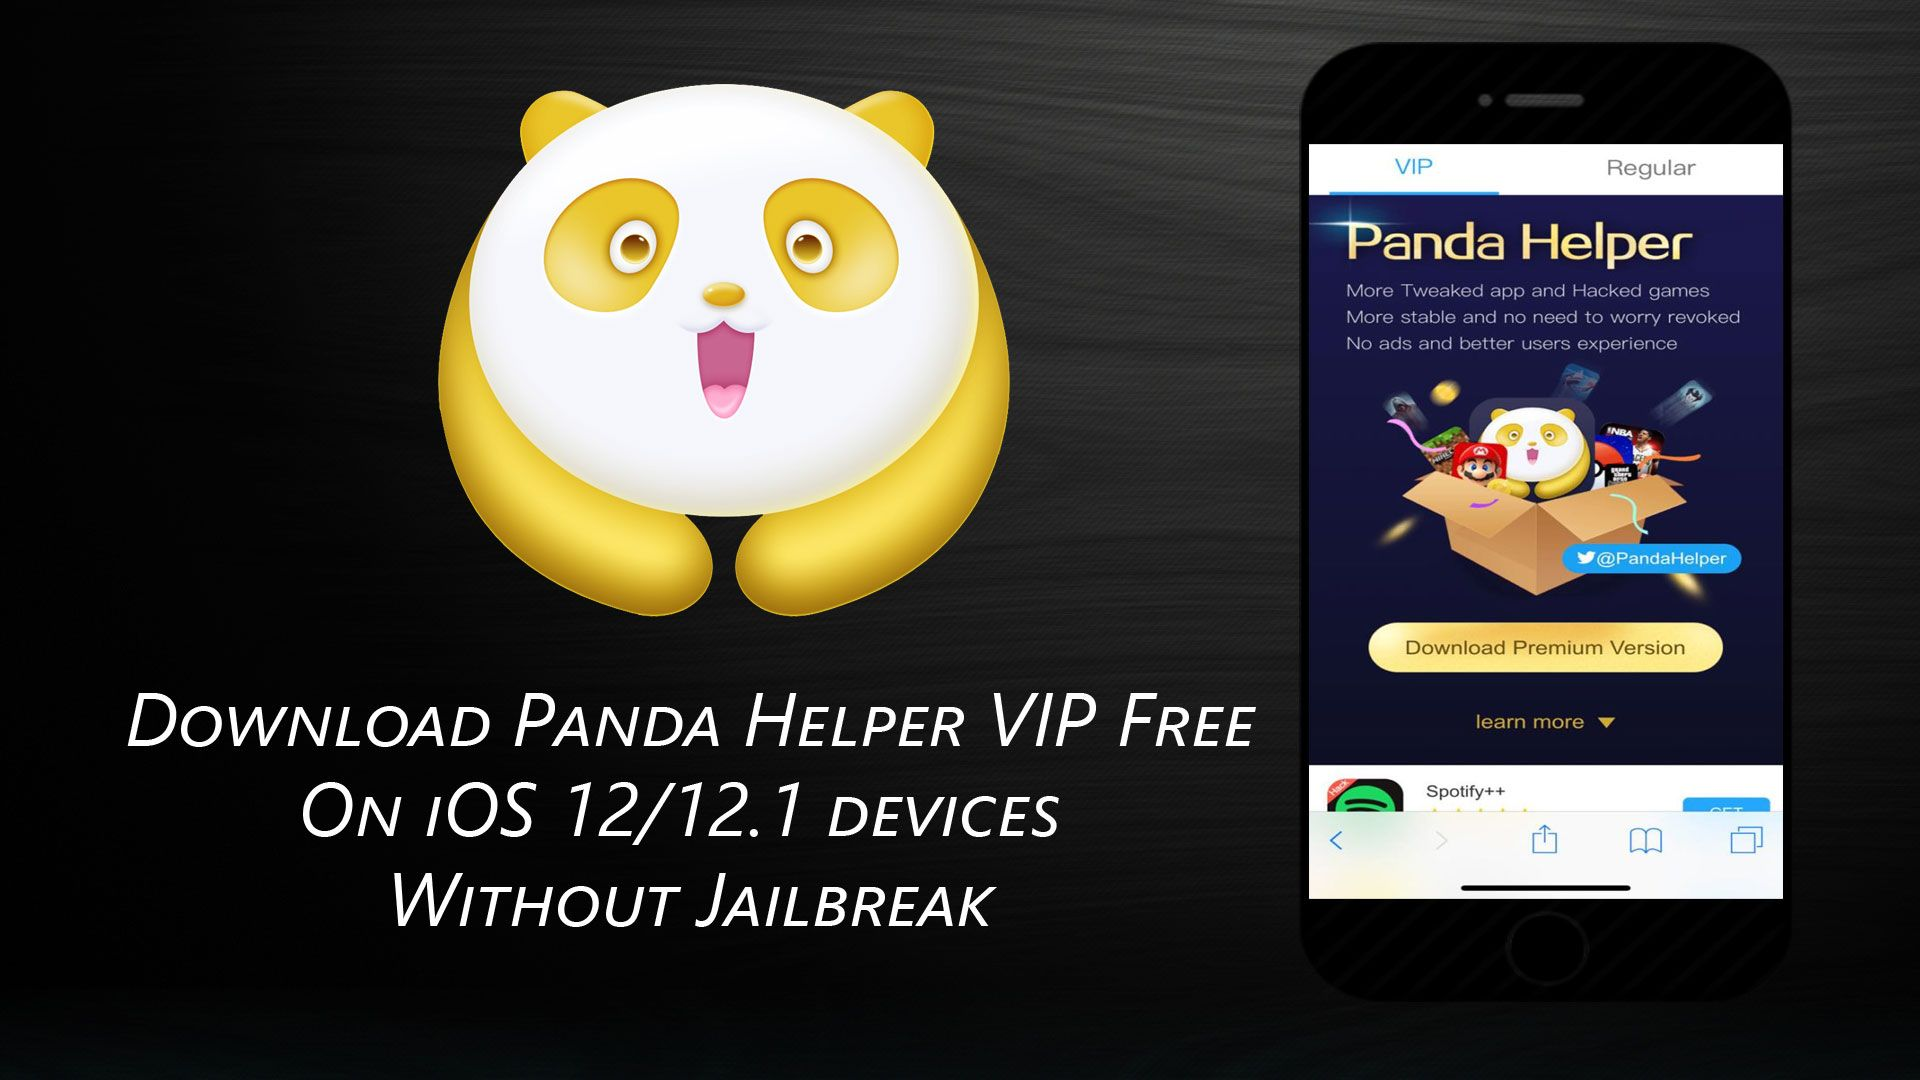 New! Get panda helper VIP free on your iOS 12 device without